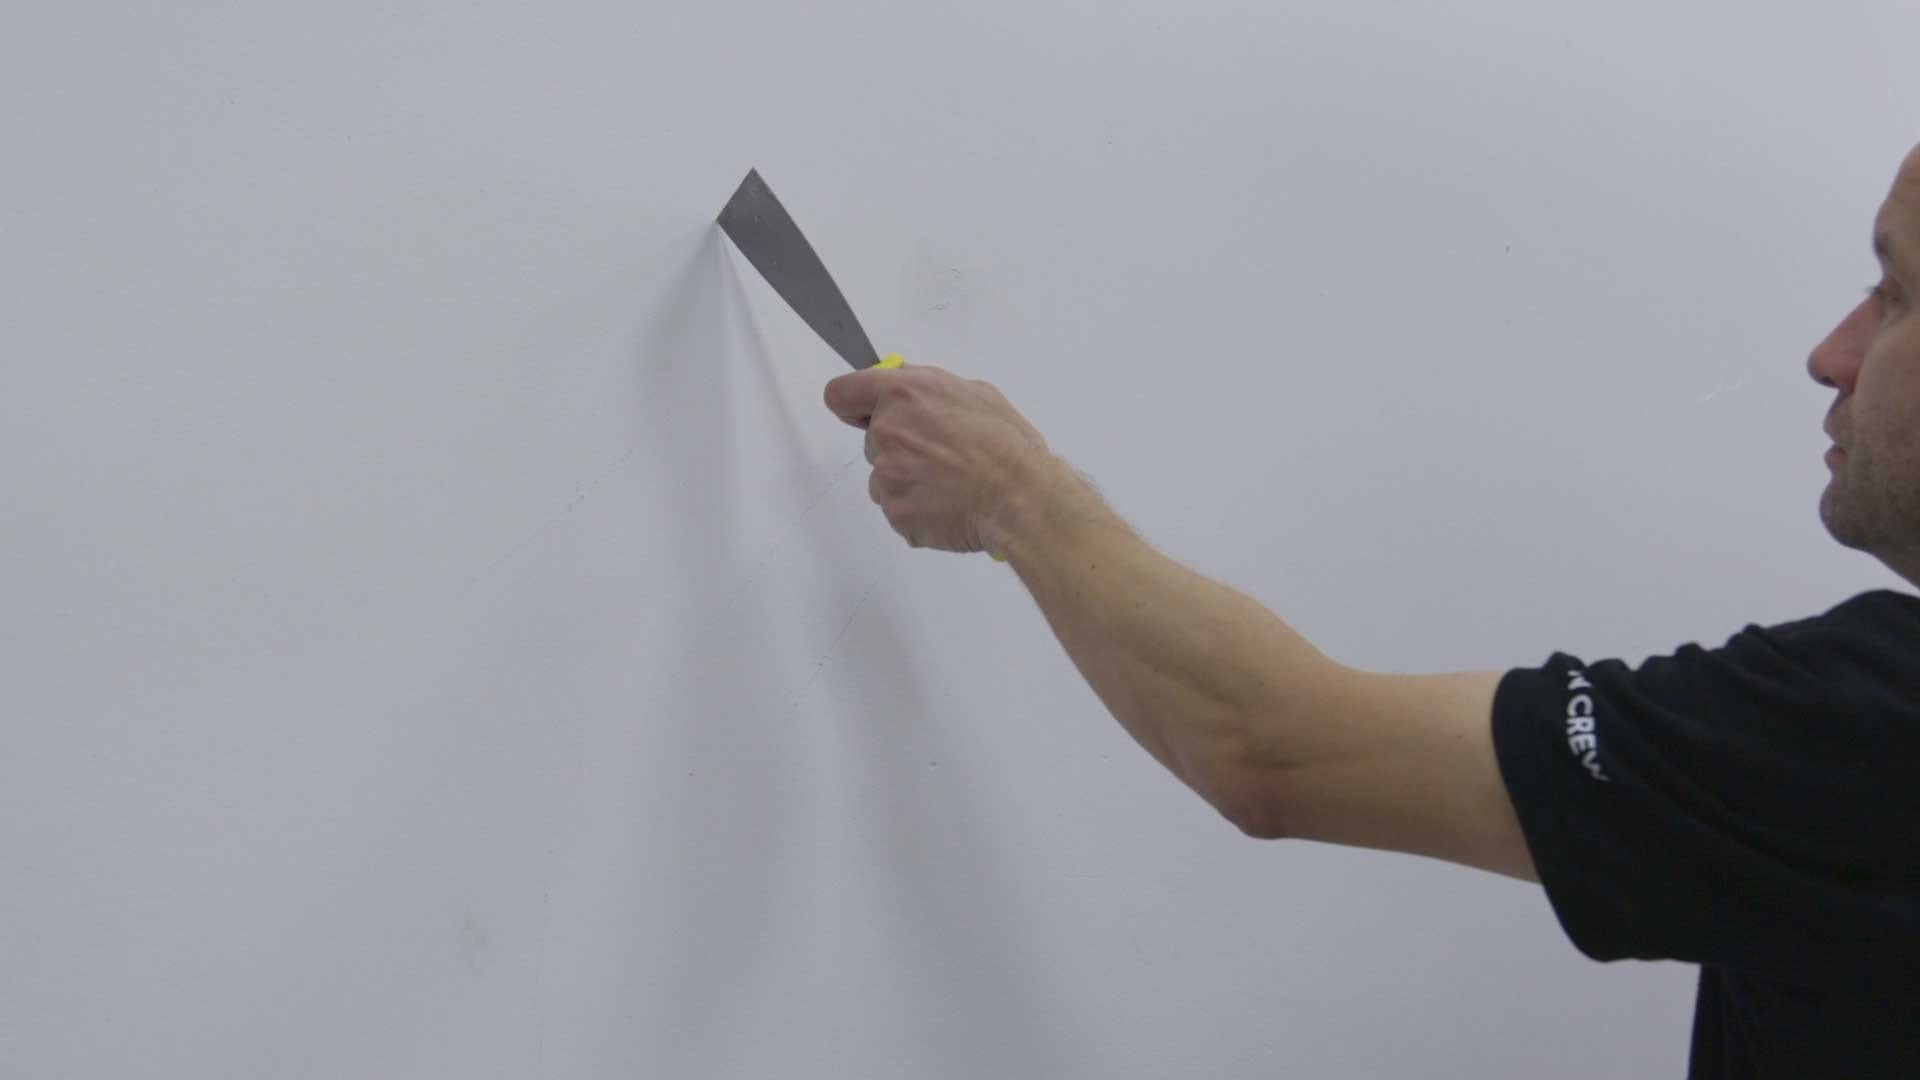 Scoring a fully painted or freshly plastered wall with a scraper